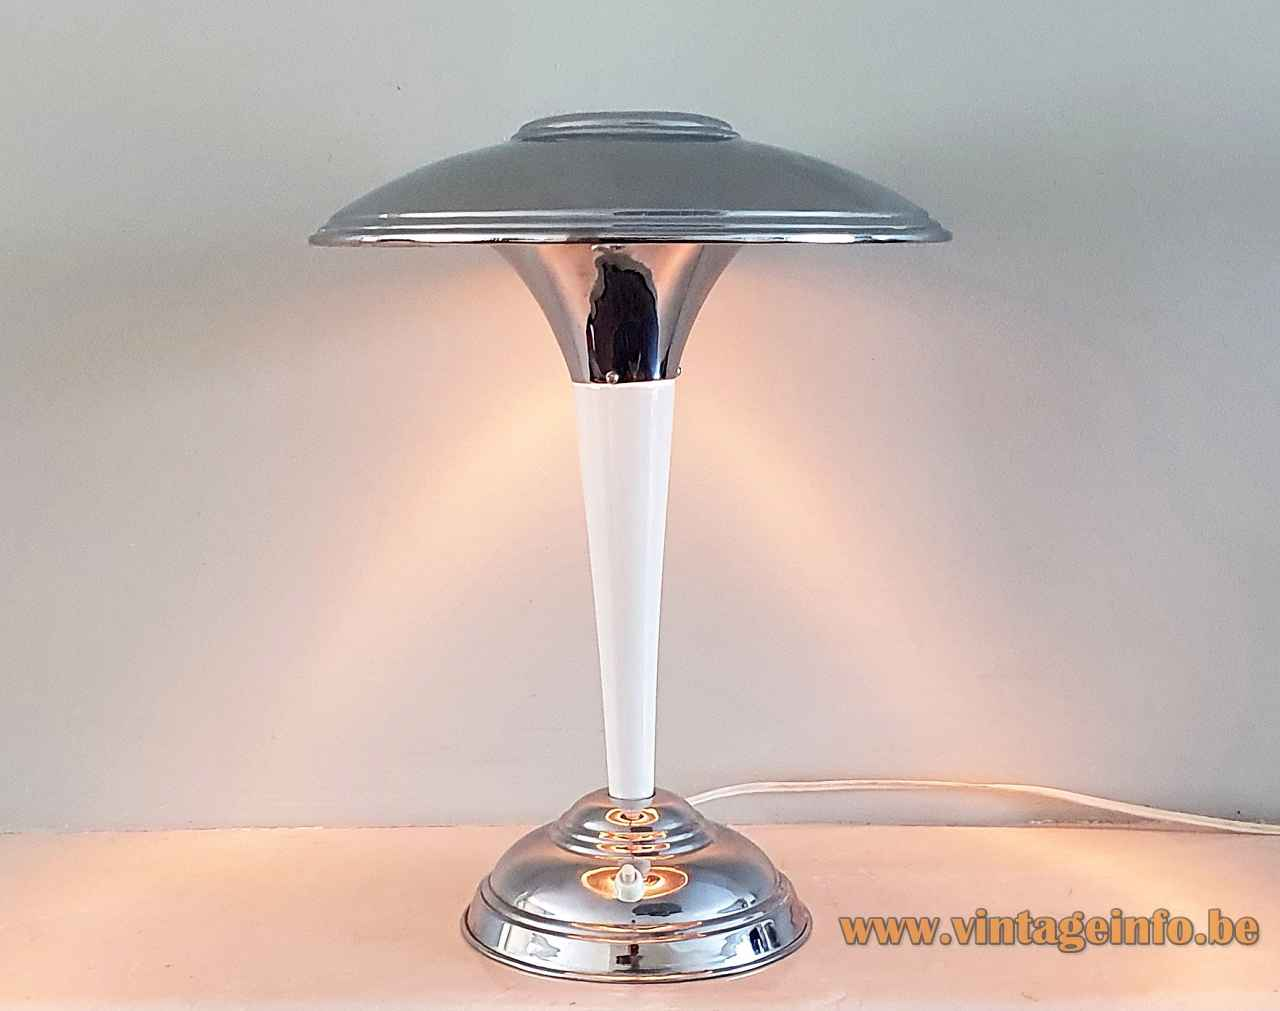 Chrome art deco table lamp round base conical white rod adjustable mushroom lampshade 1920s 1930s France